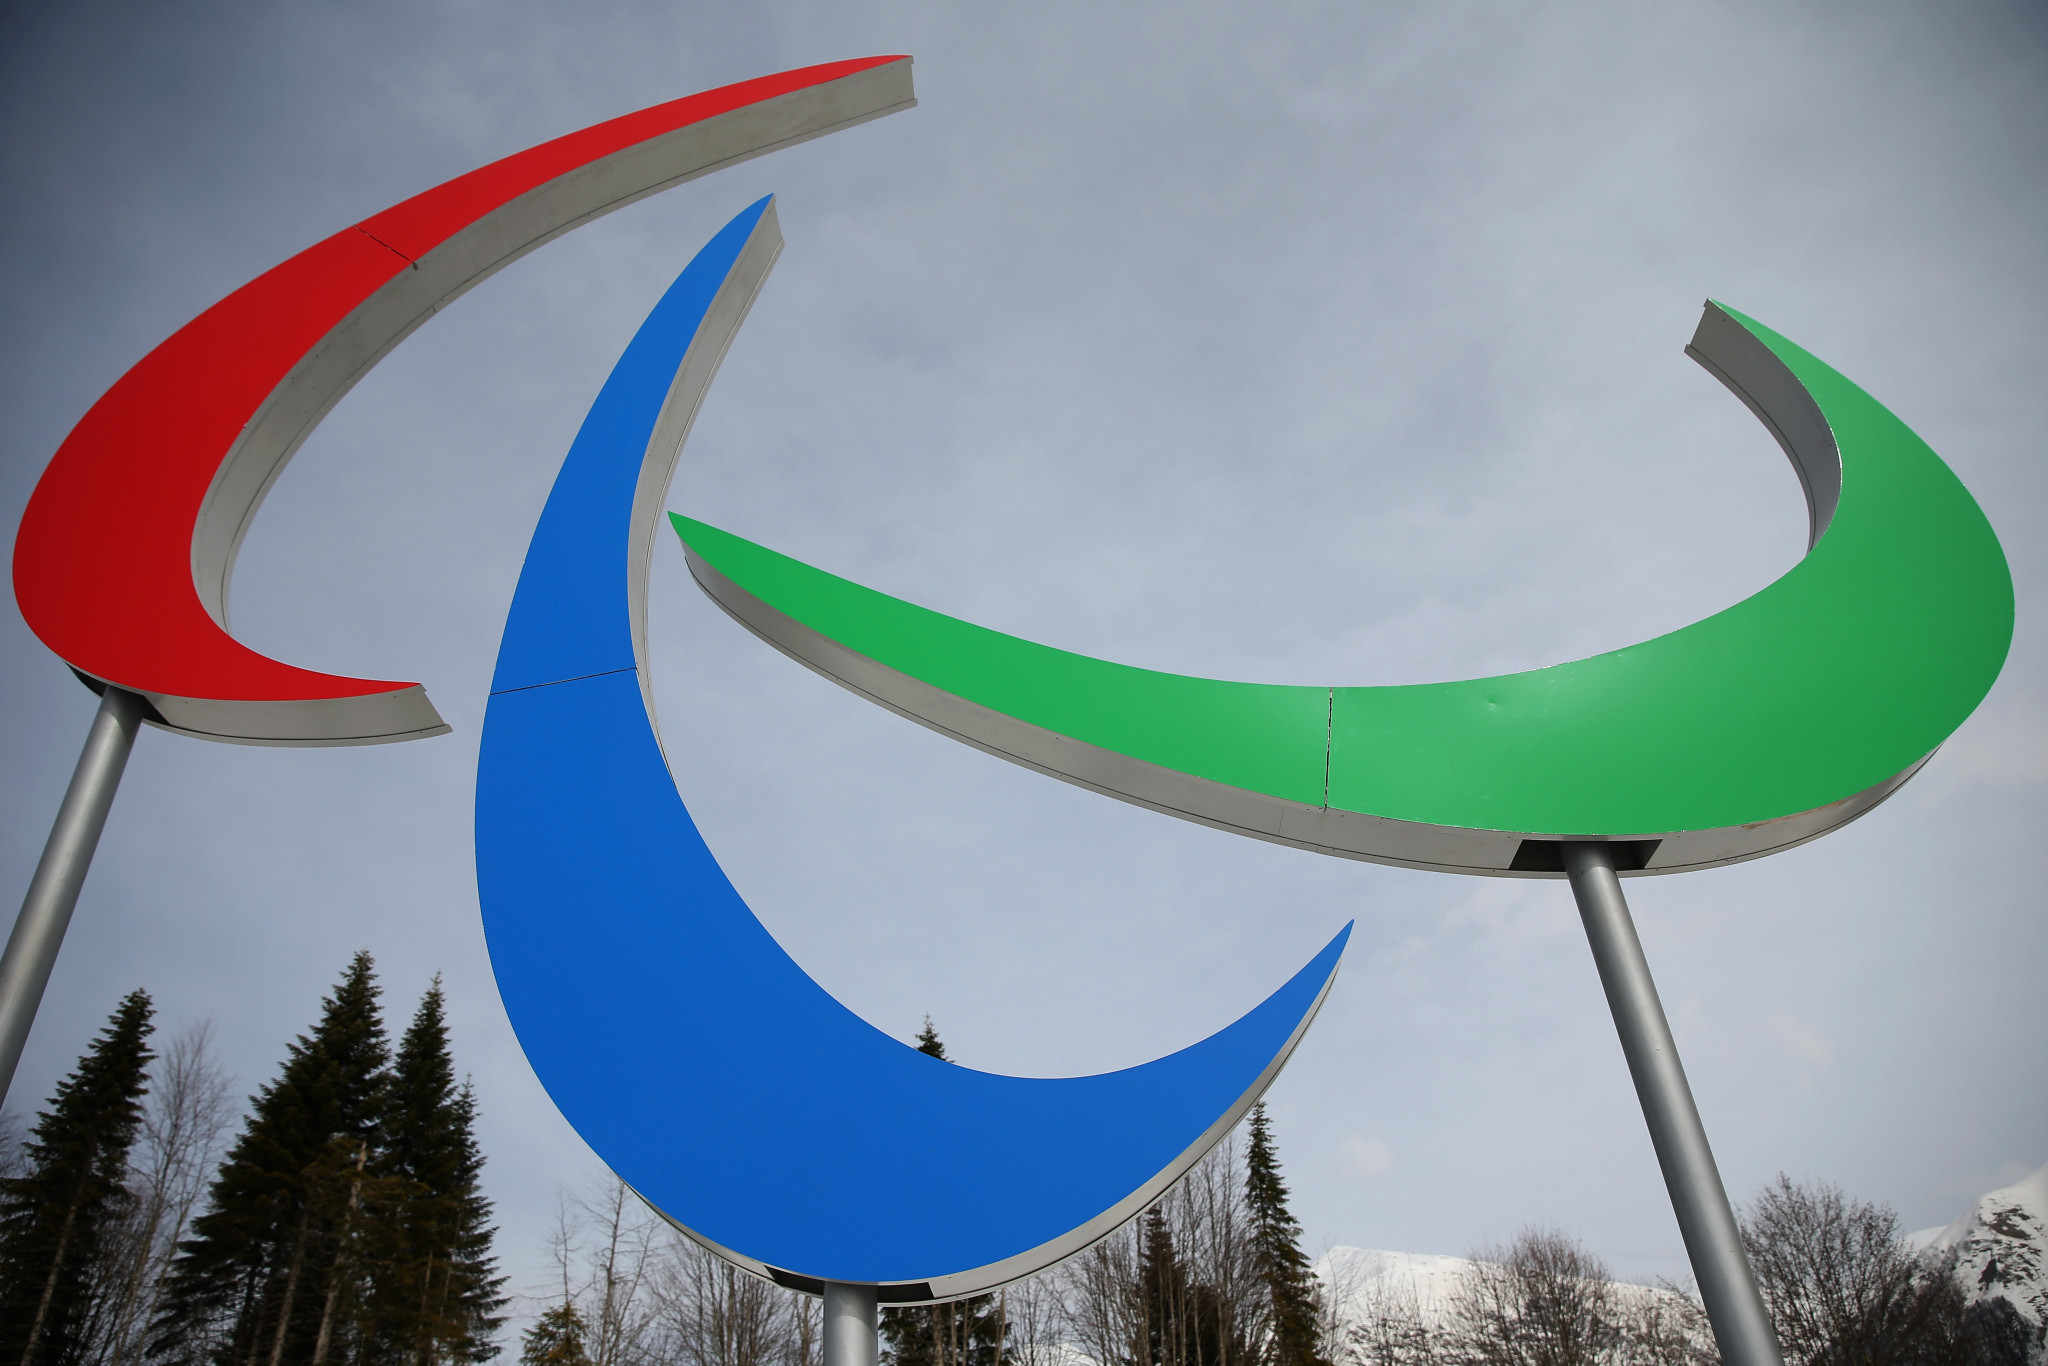 IPC and Pyeongchang 2018 praise Actualising the Dream Project